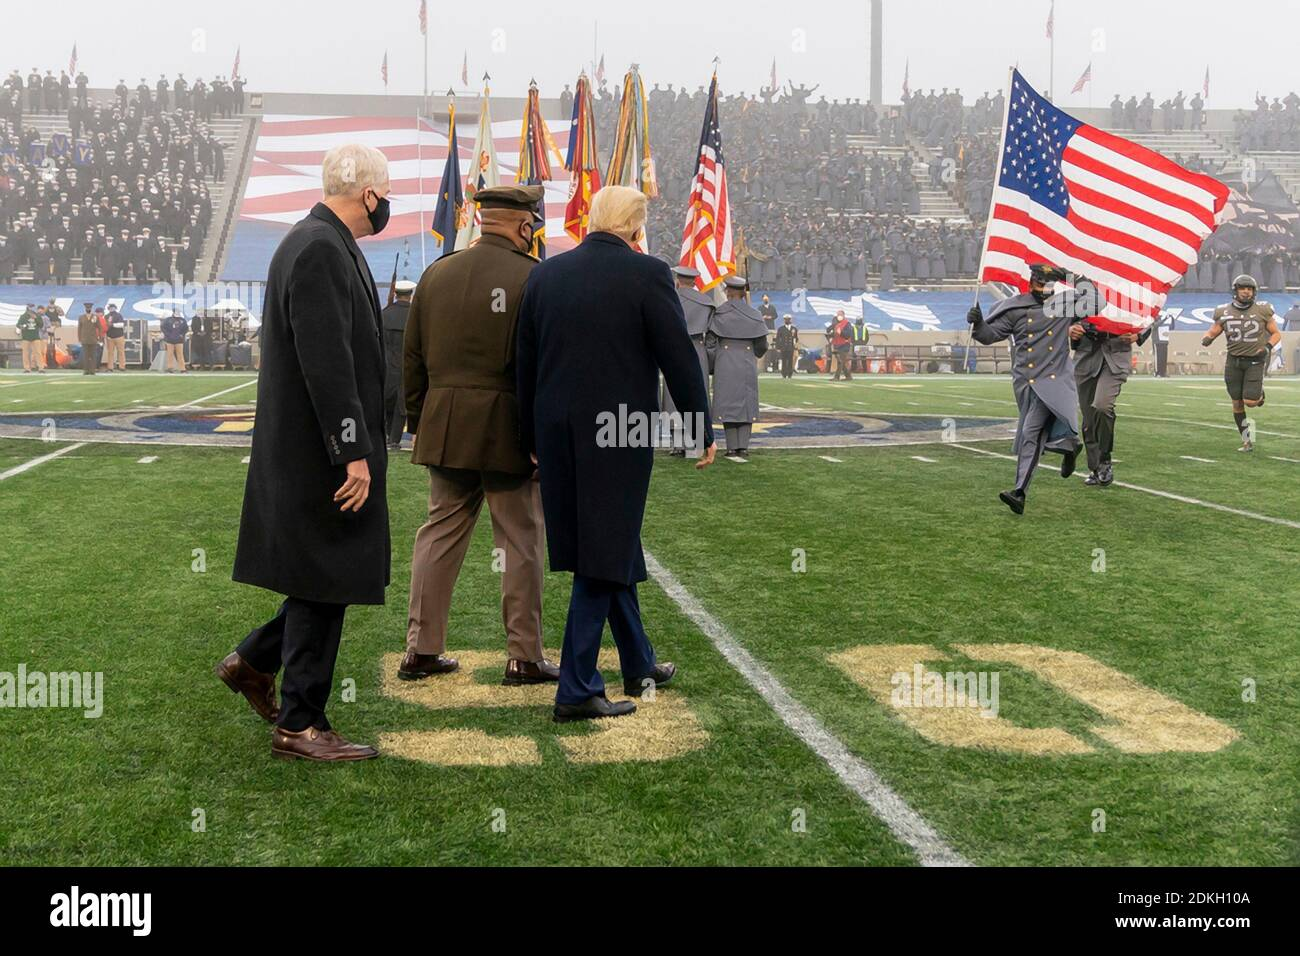 U.S. President Donald Trump walks out to the field with Chairman of the Joint Chiefs Gen. Mark Milley, center, and Acting Secretary of Defense Chris Miller, left, at the start the 121st Army-Navy football game at Michie Stadium December 12, 2019 in West Point, New York. The Army Black Knights shutout the Navy Midshipmen 15-0. Stock Photo